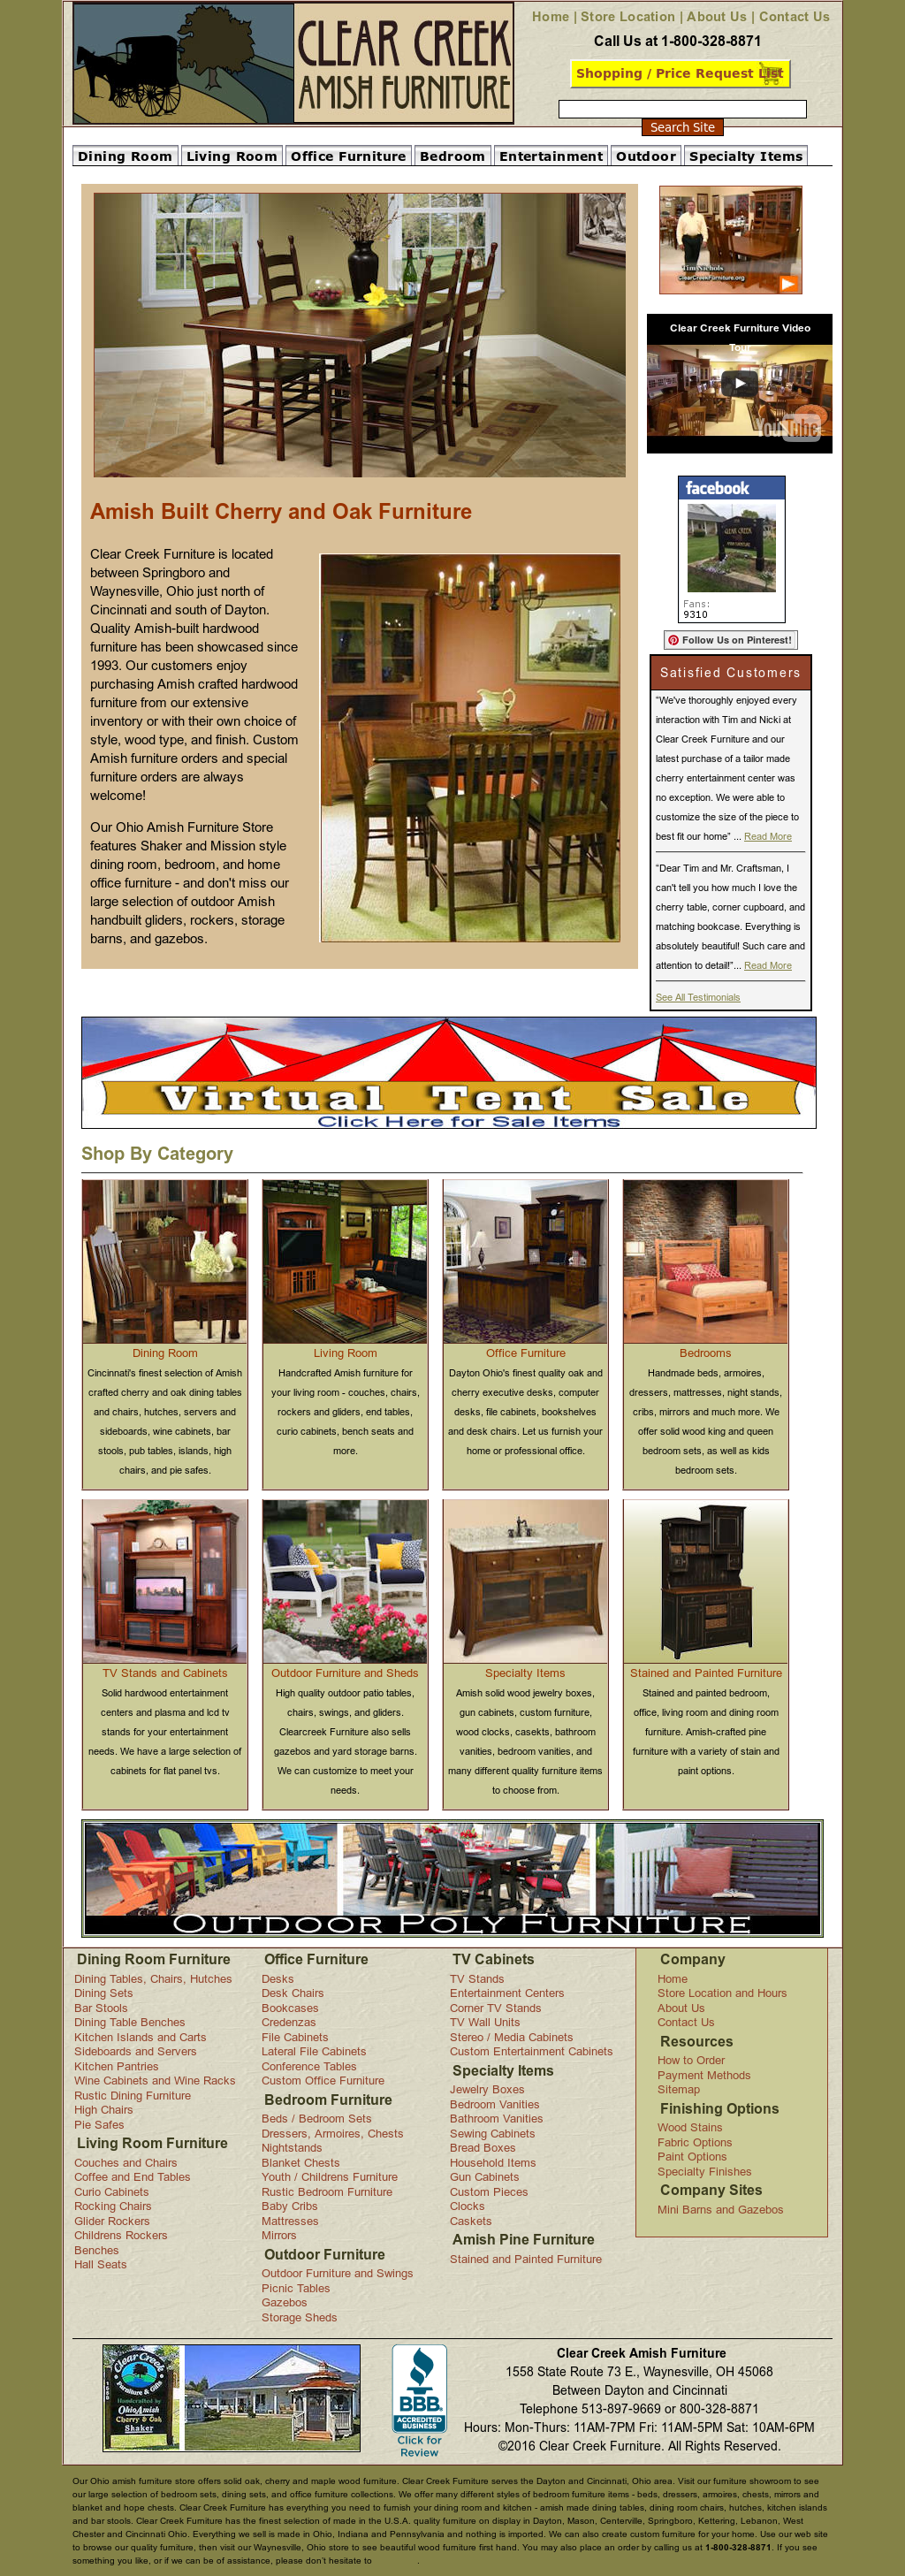 Clear Creek Furniture And Gifts Website History